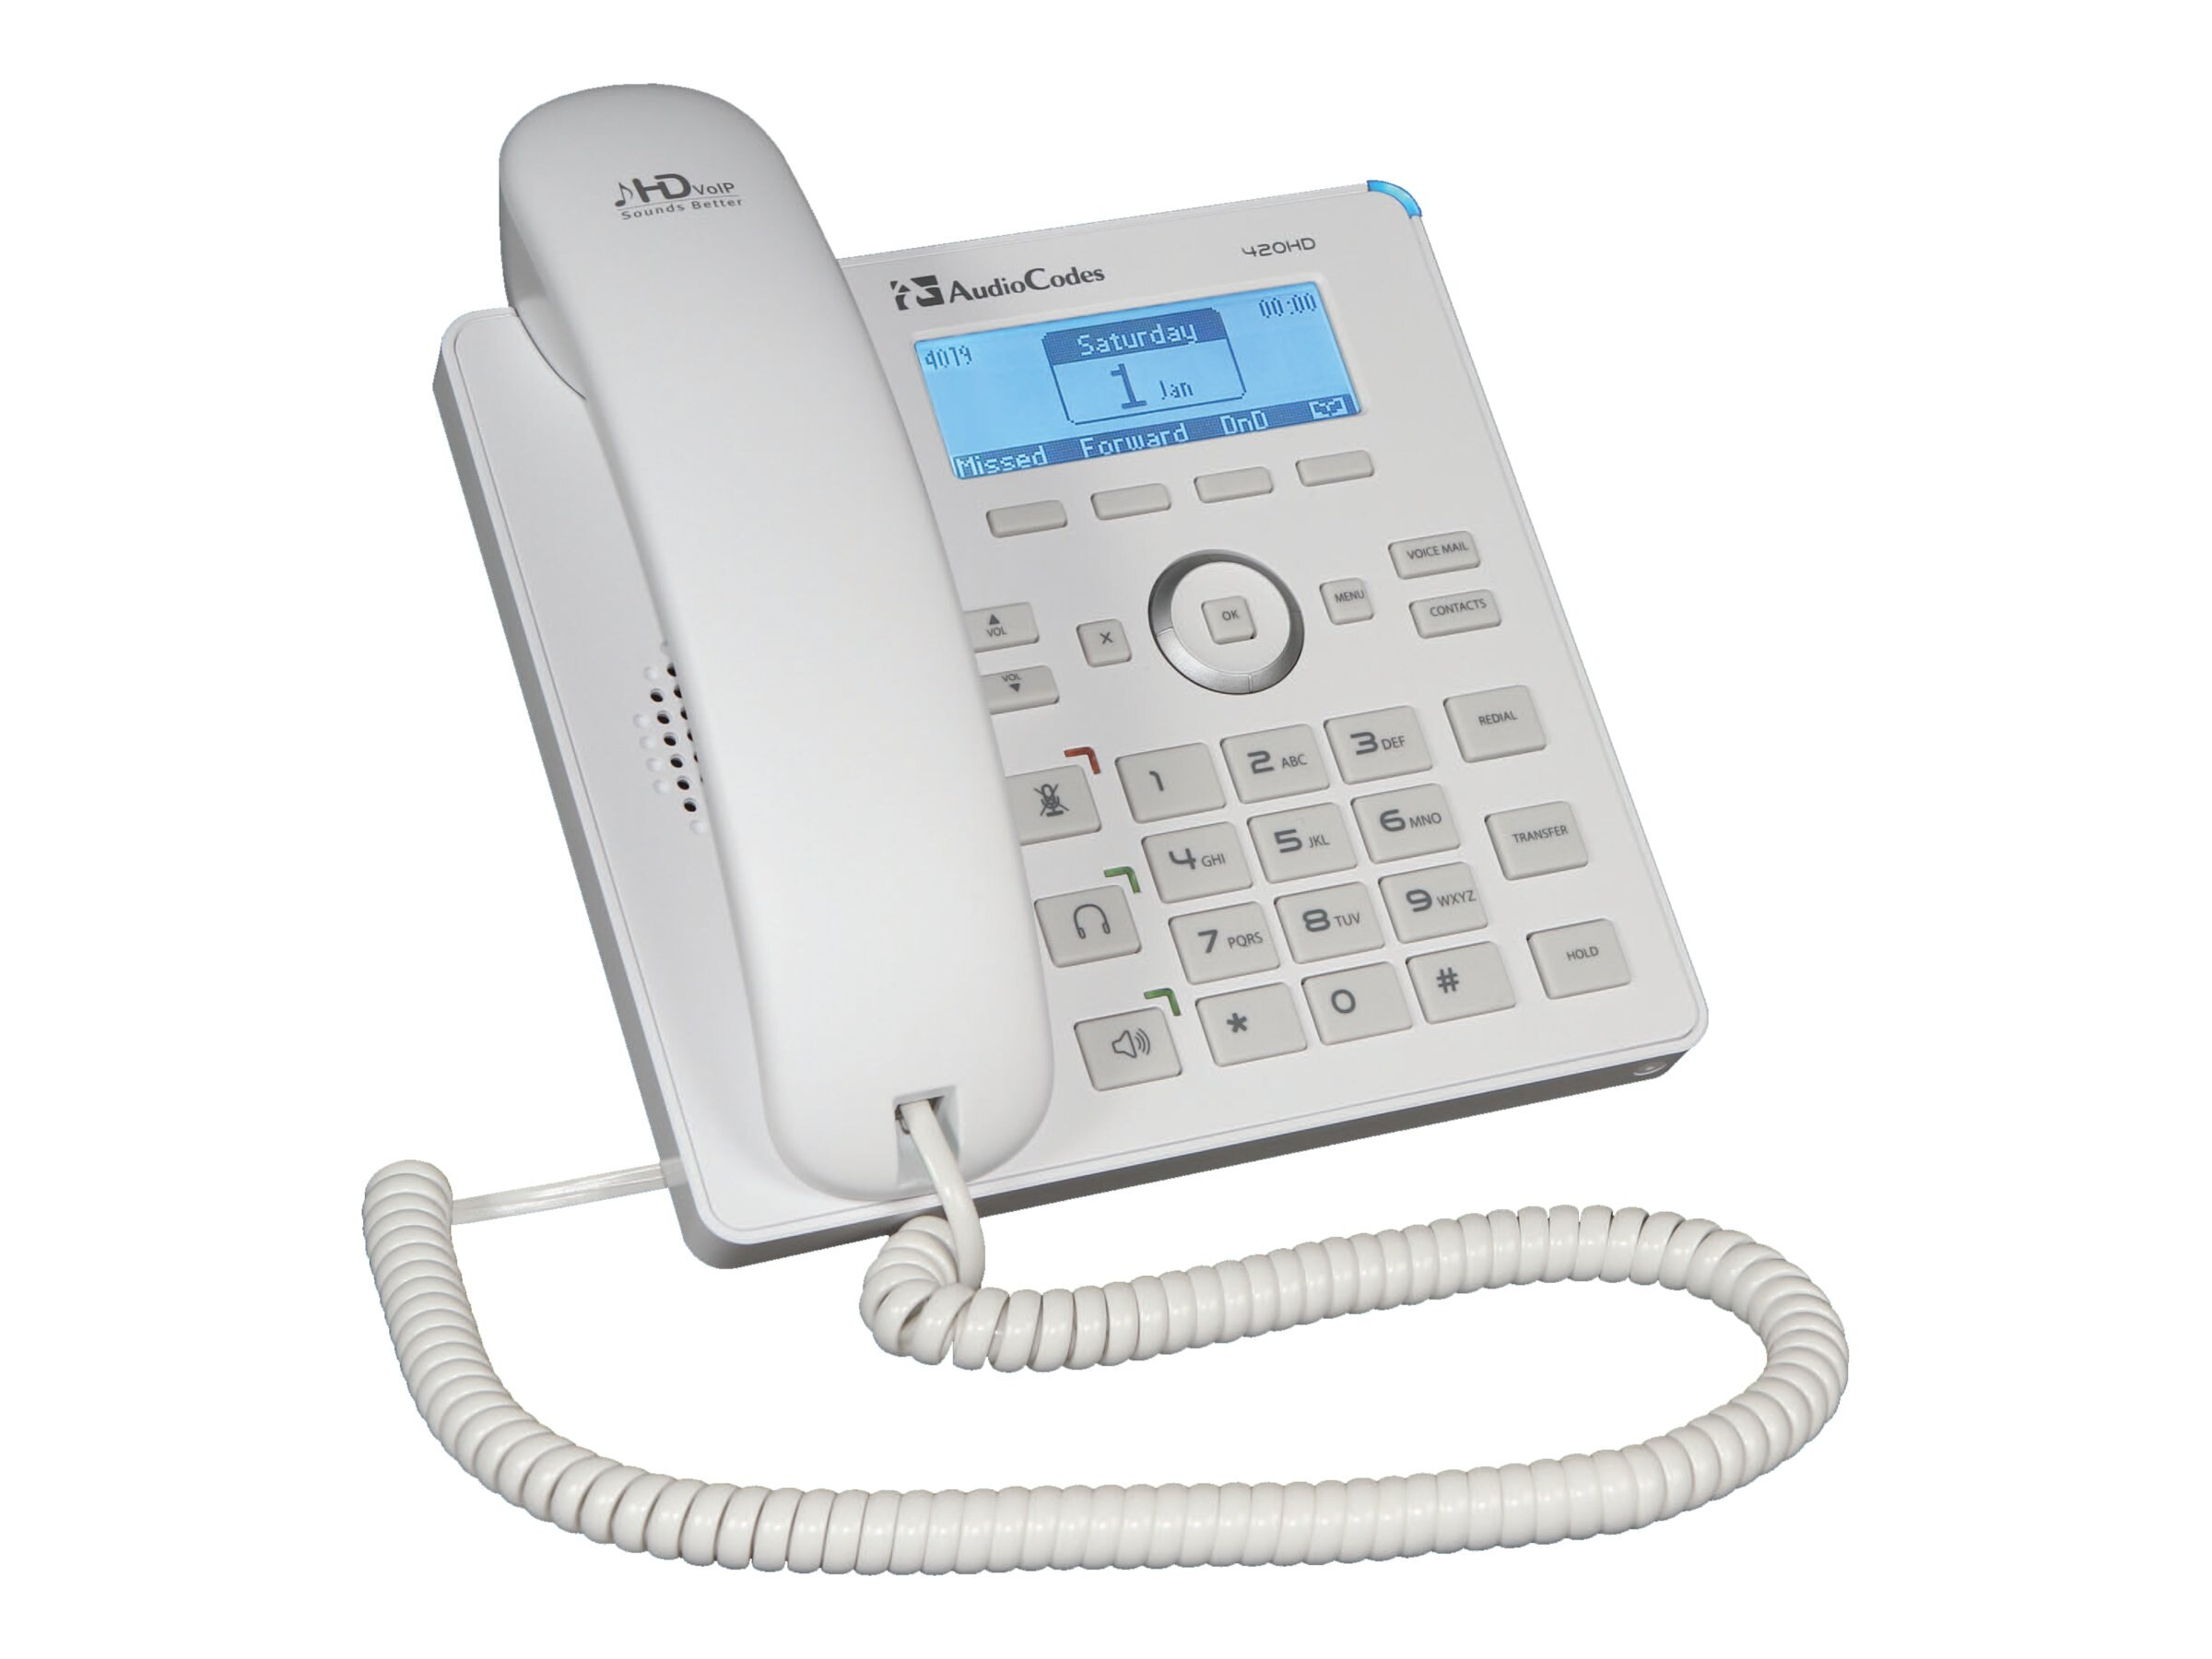 AudioCodes AudioCodes 420HD IP-Phone PoE, White, 2 lines